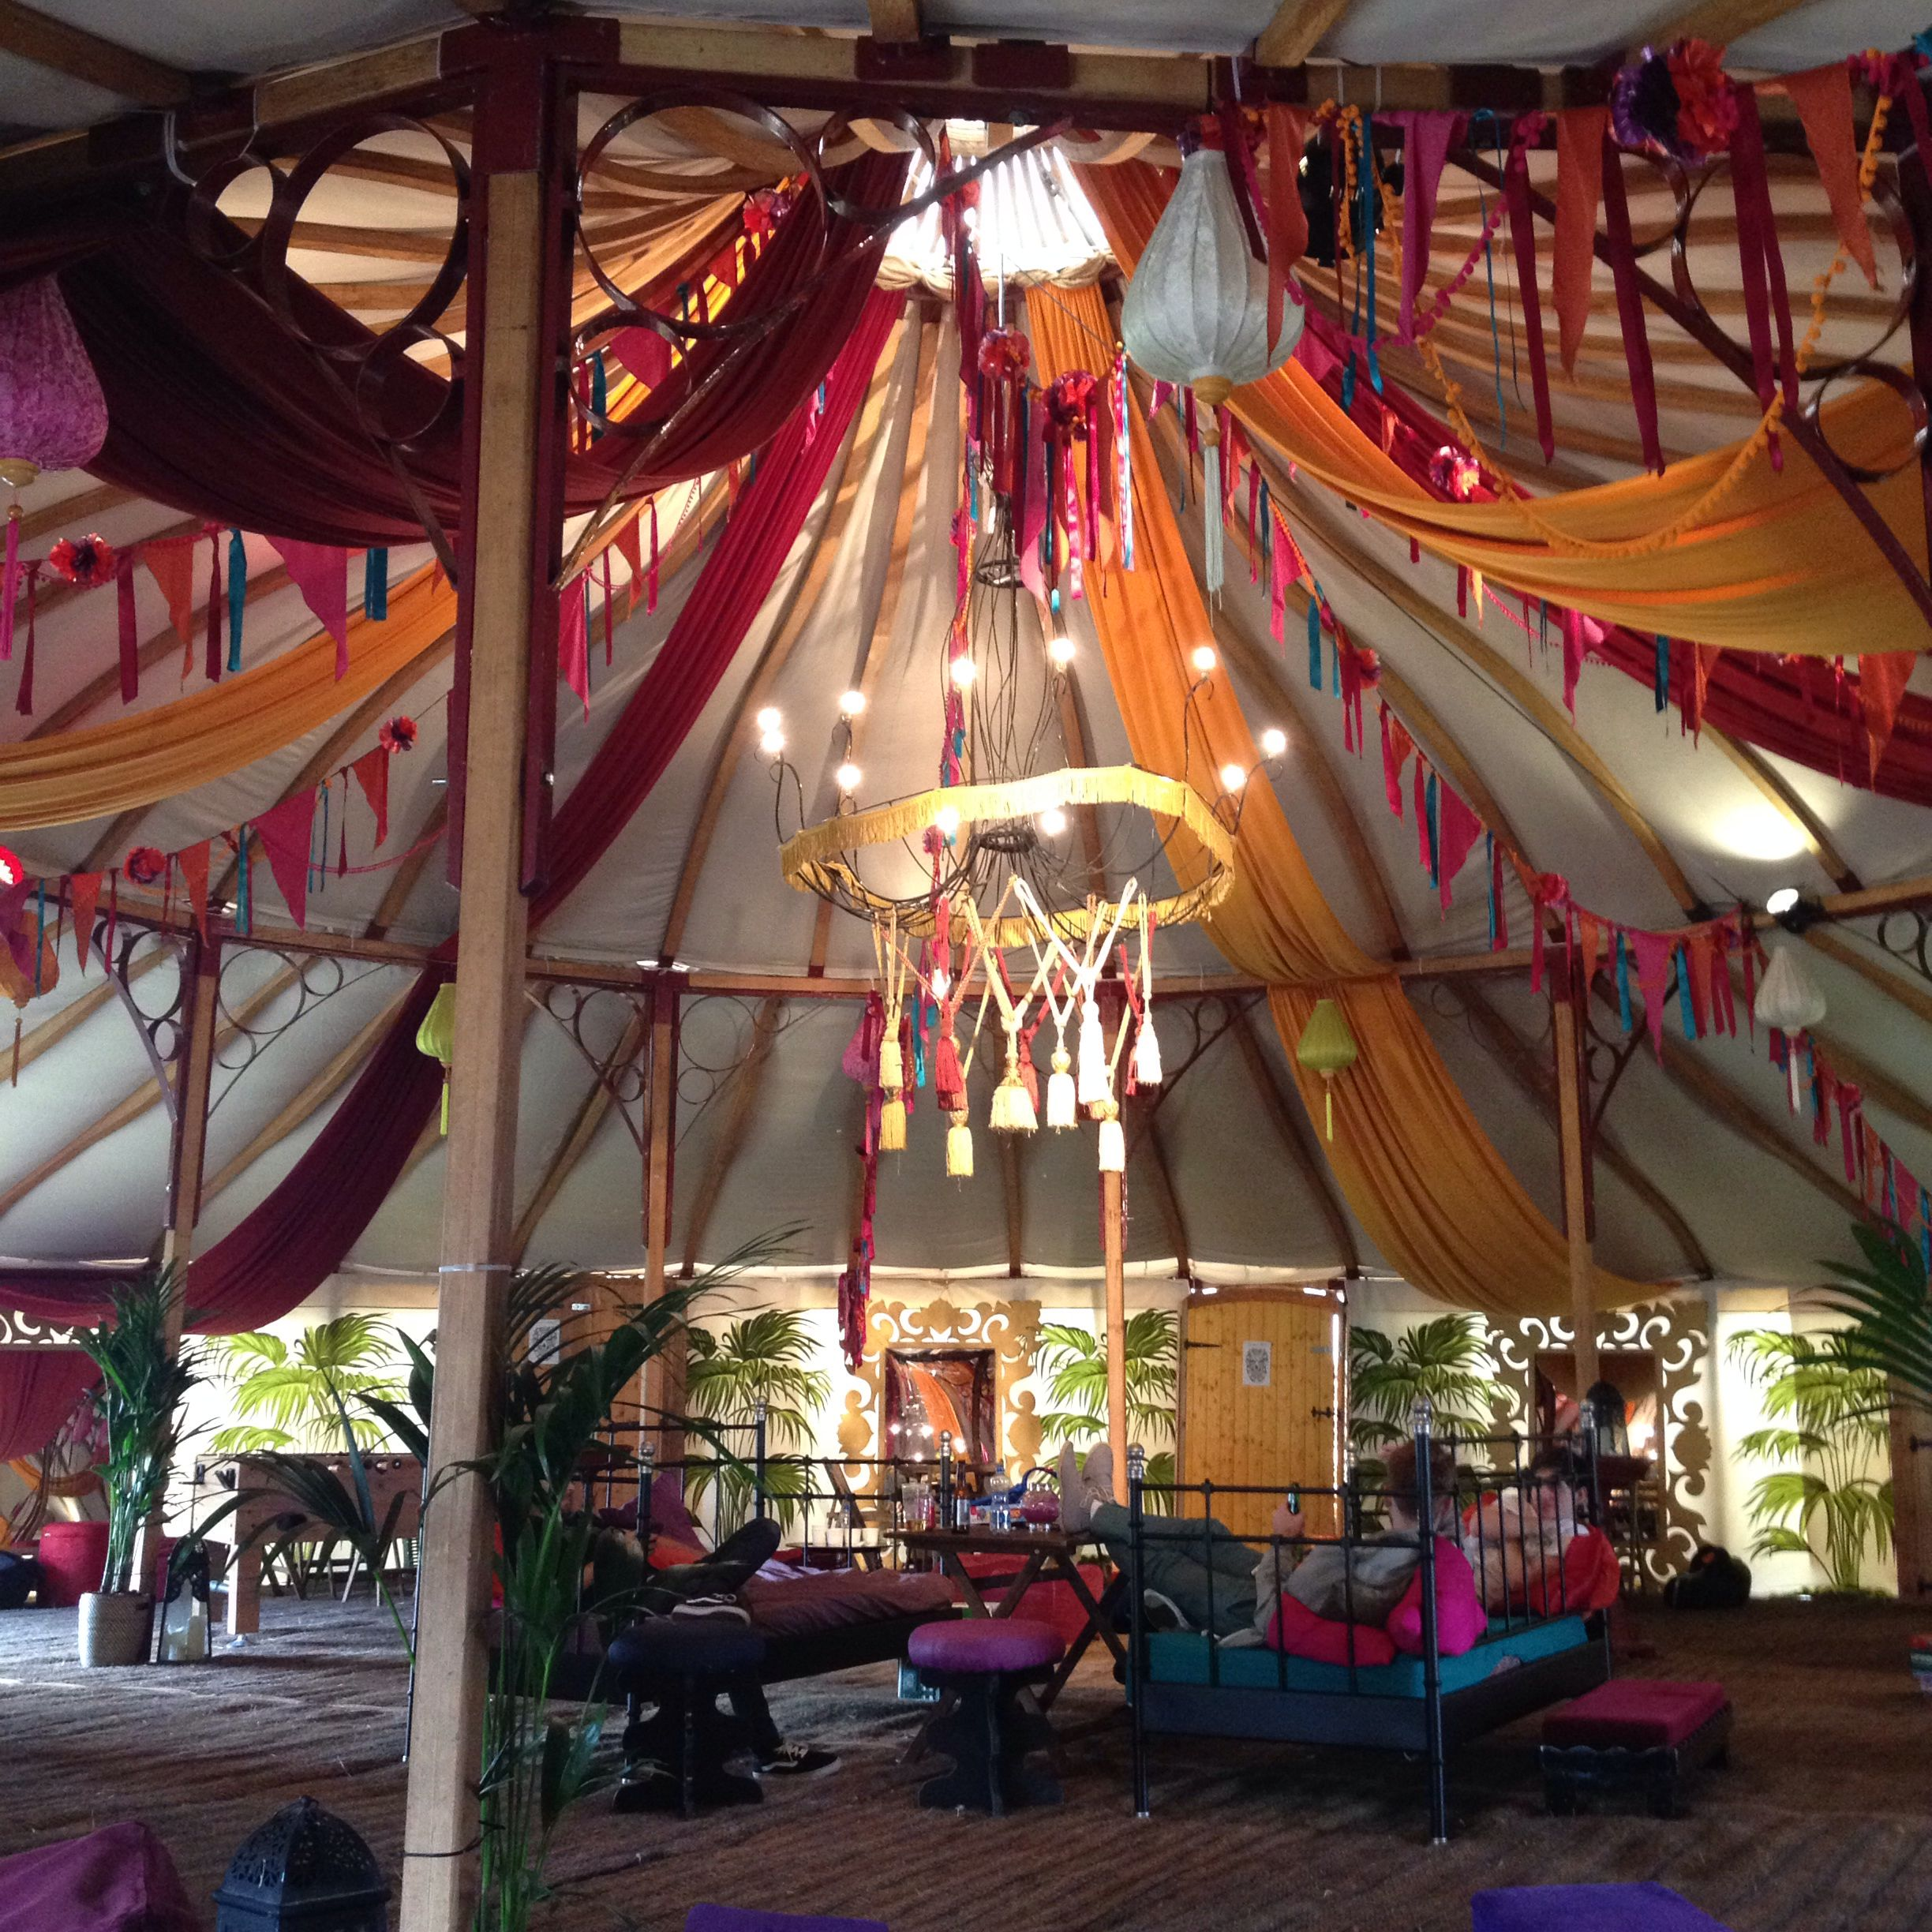 Electric Picnic Festival Vip Tent Electric Picnic Pinterest